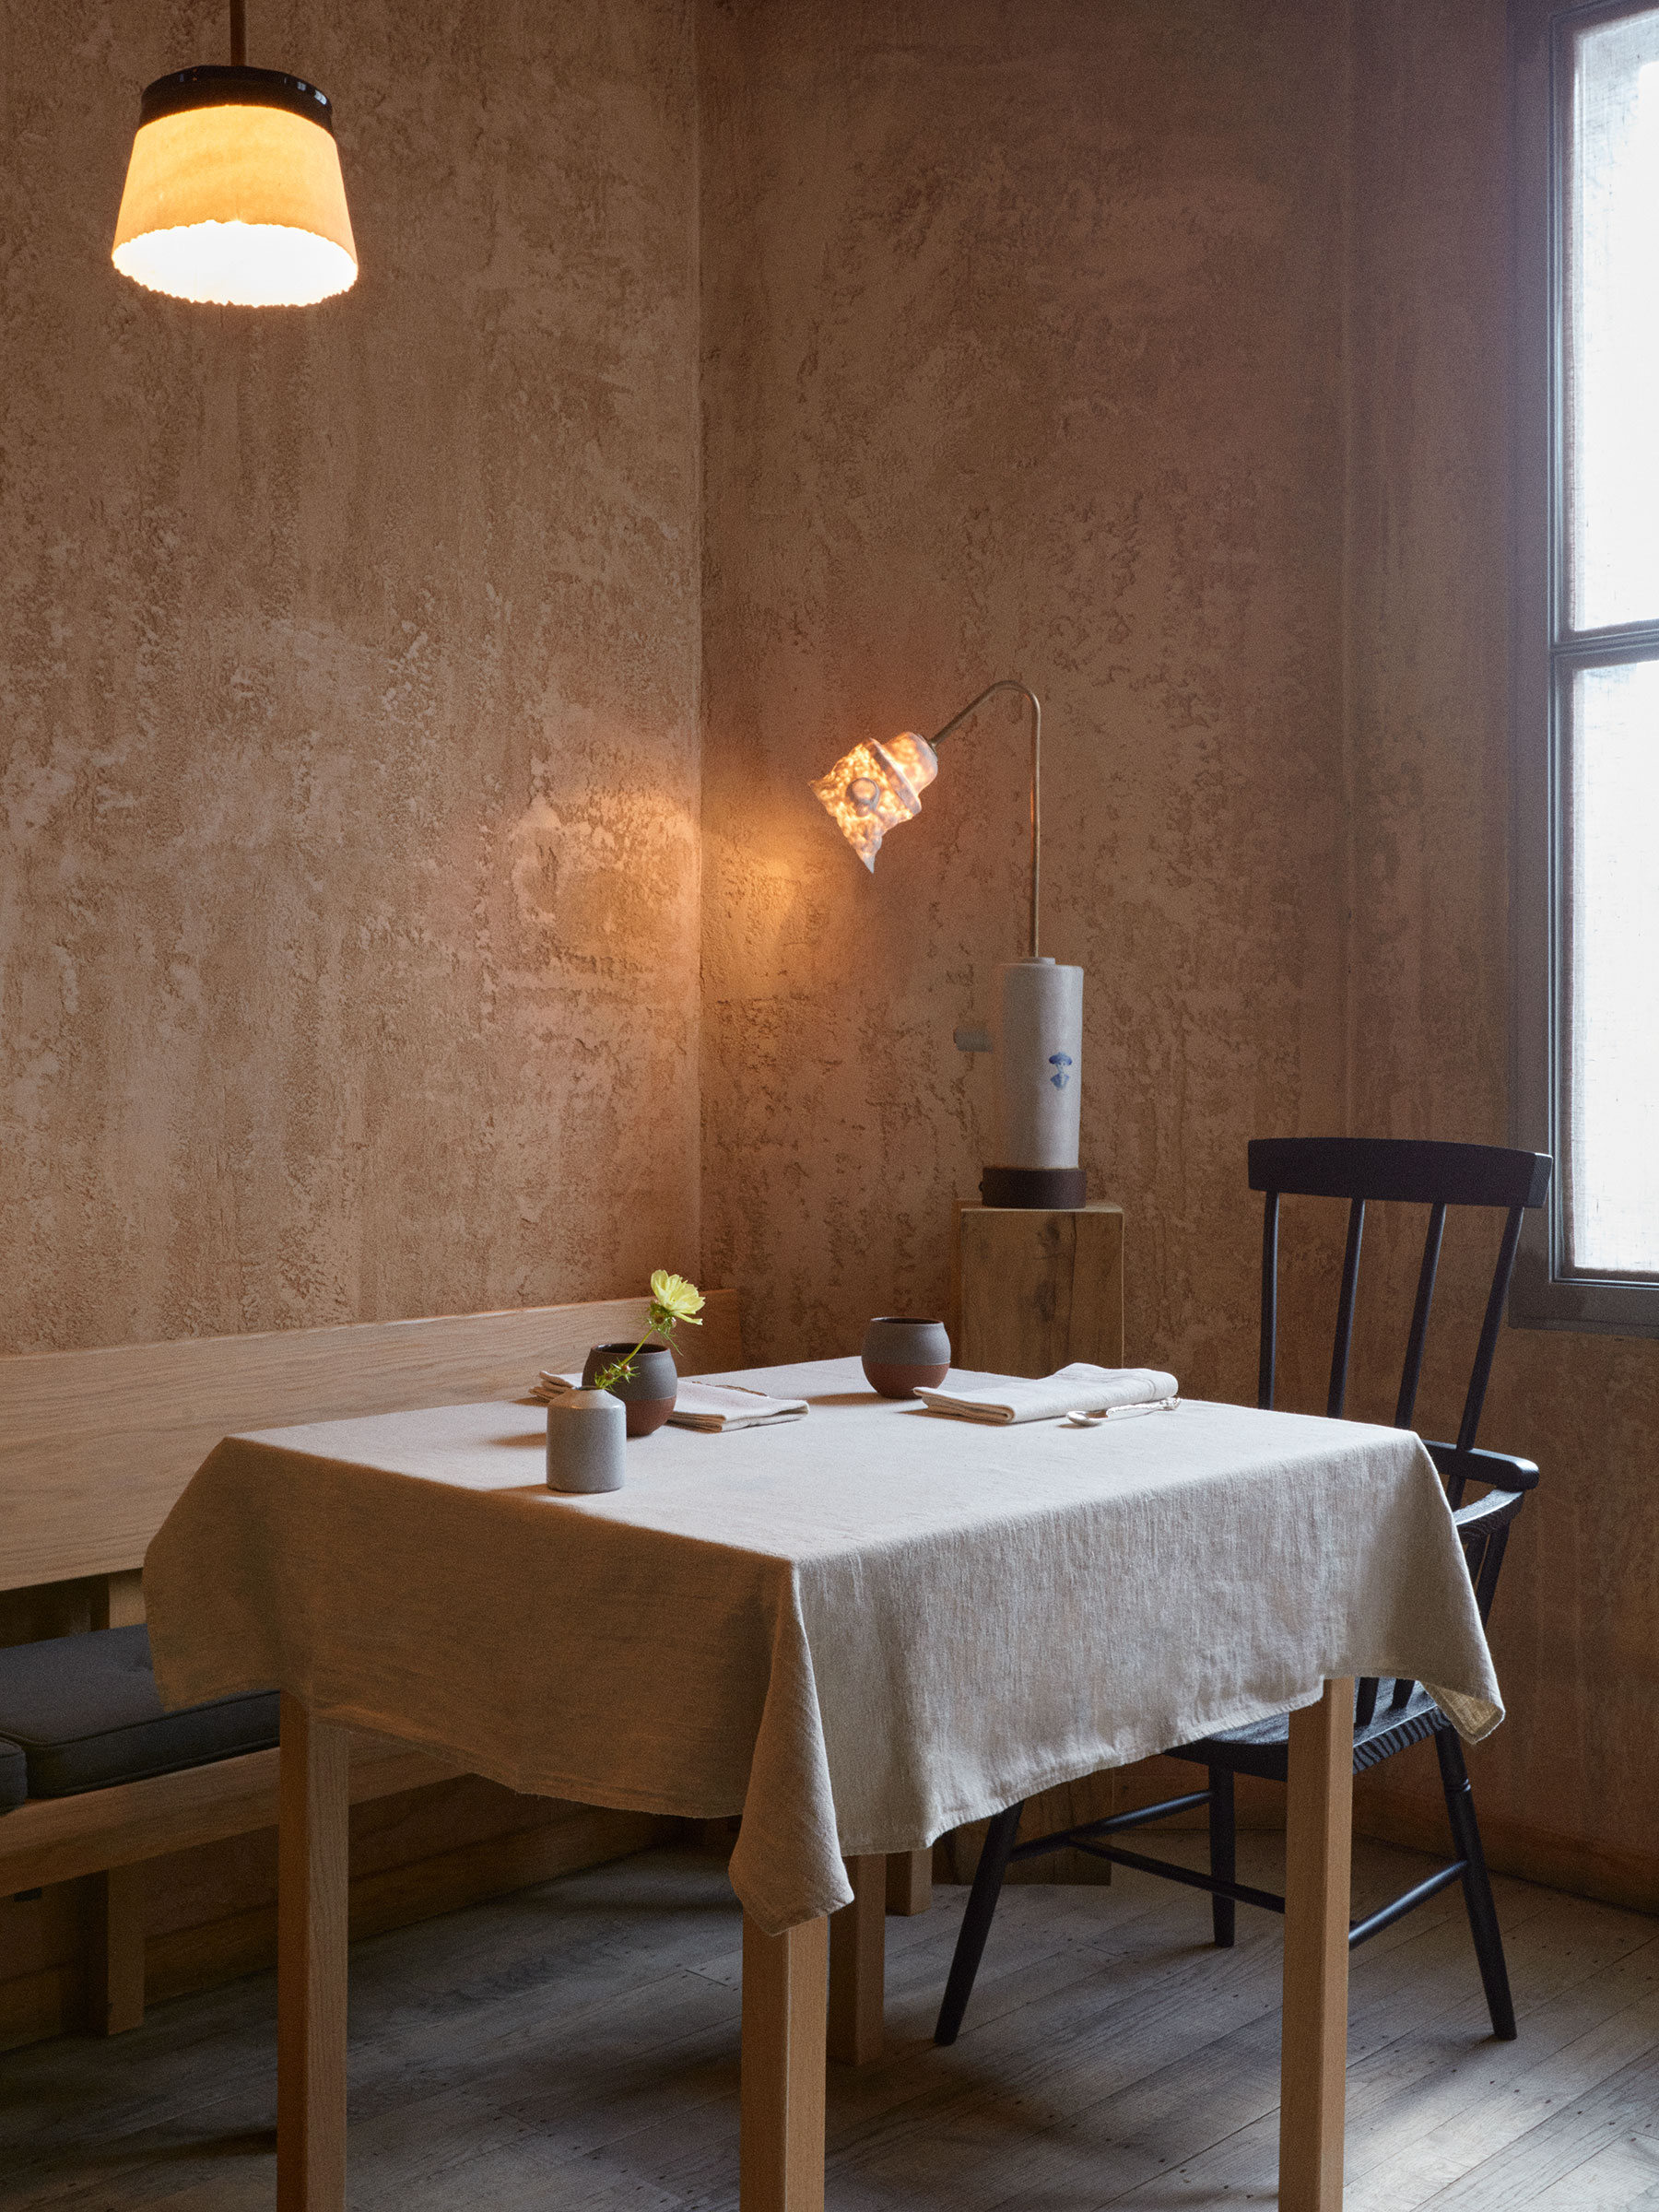 the ceramic table lamp is from bddw. 12